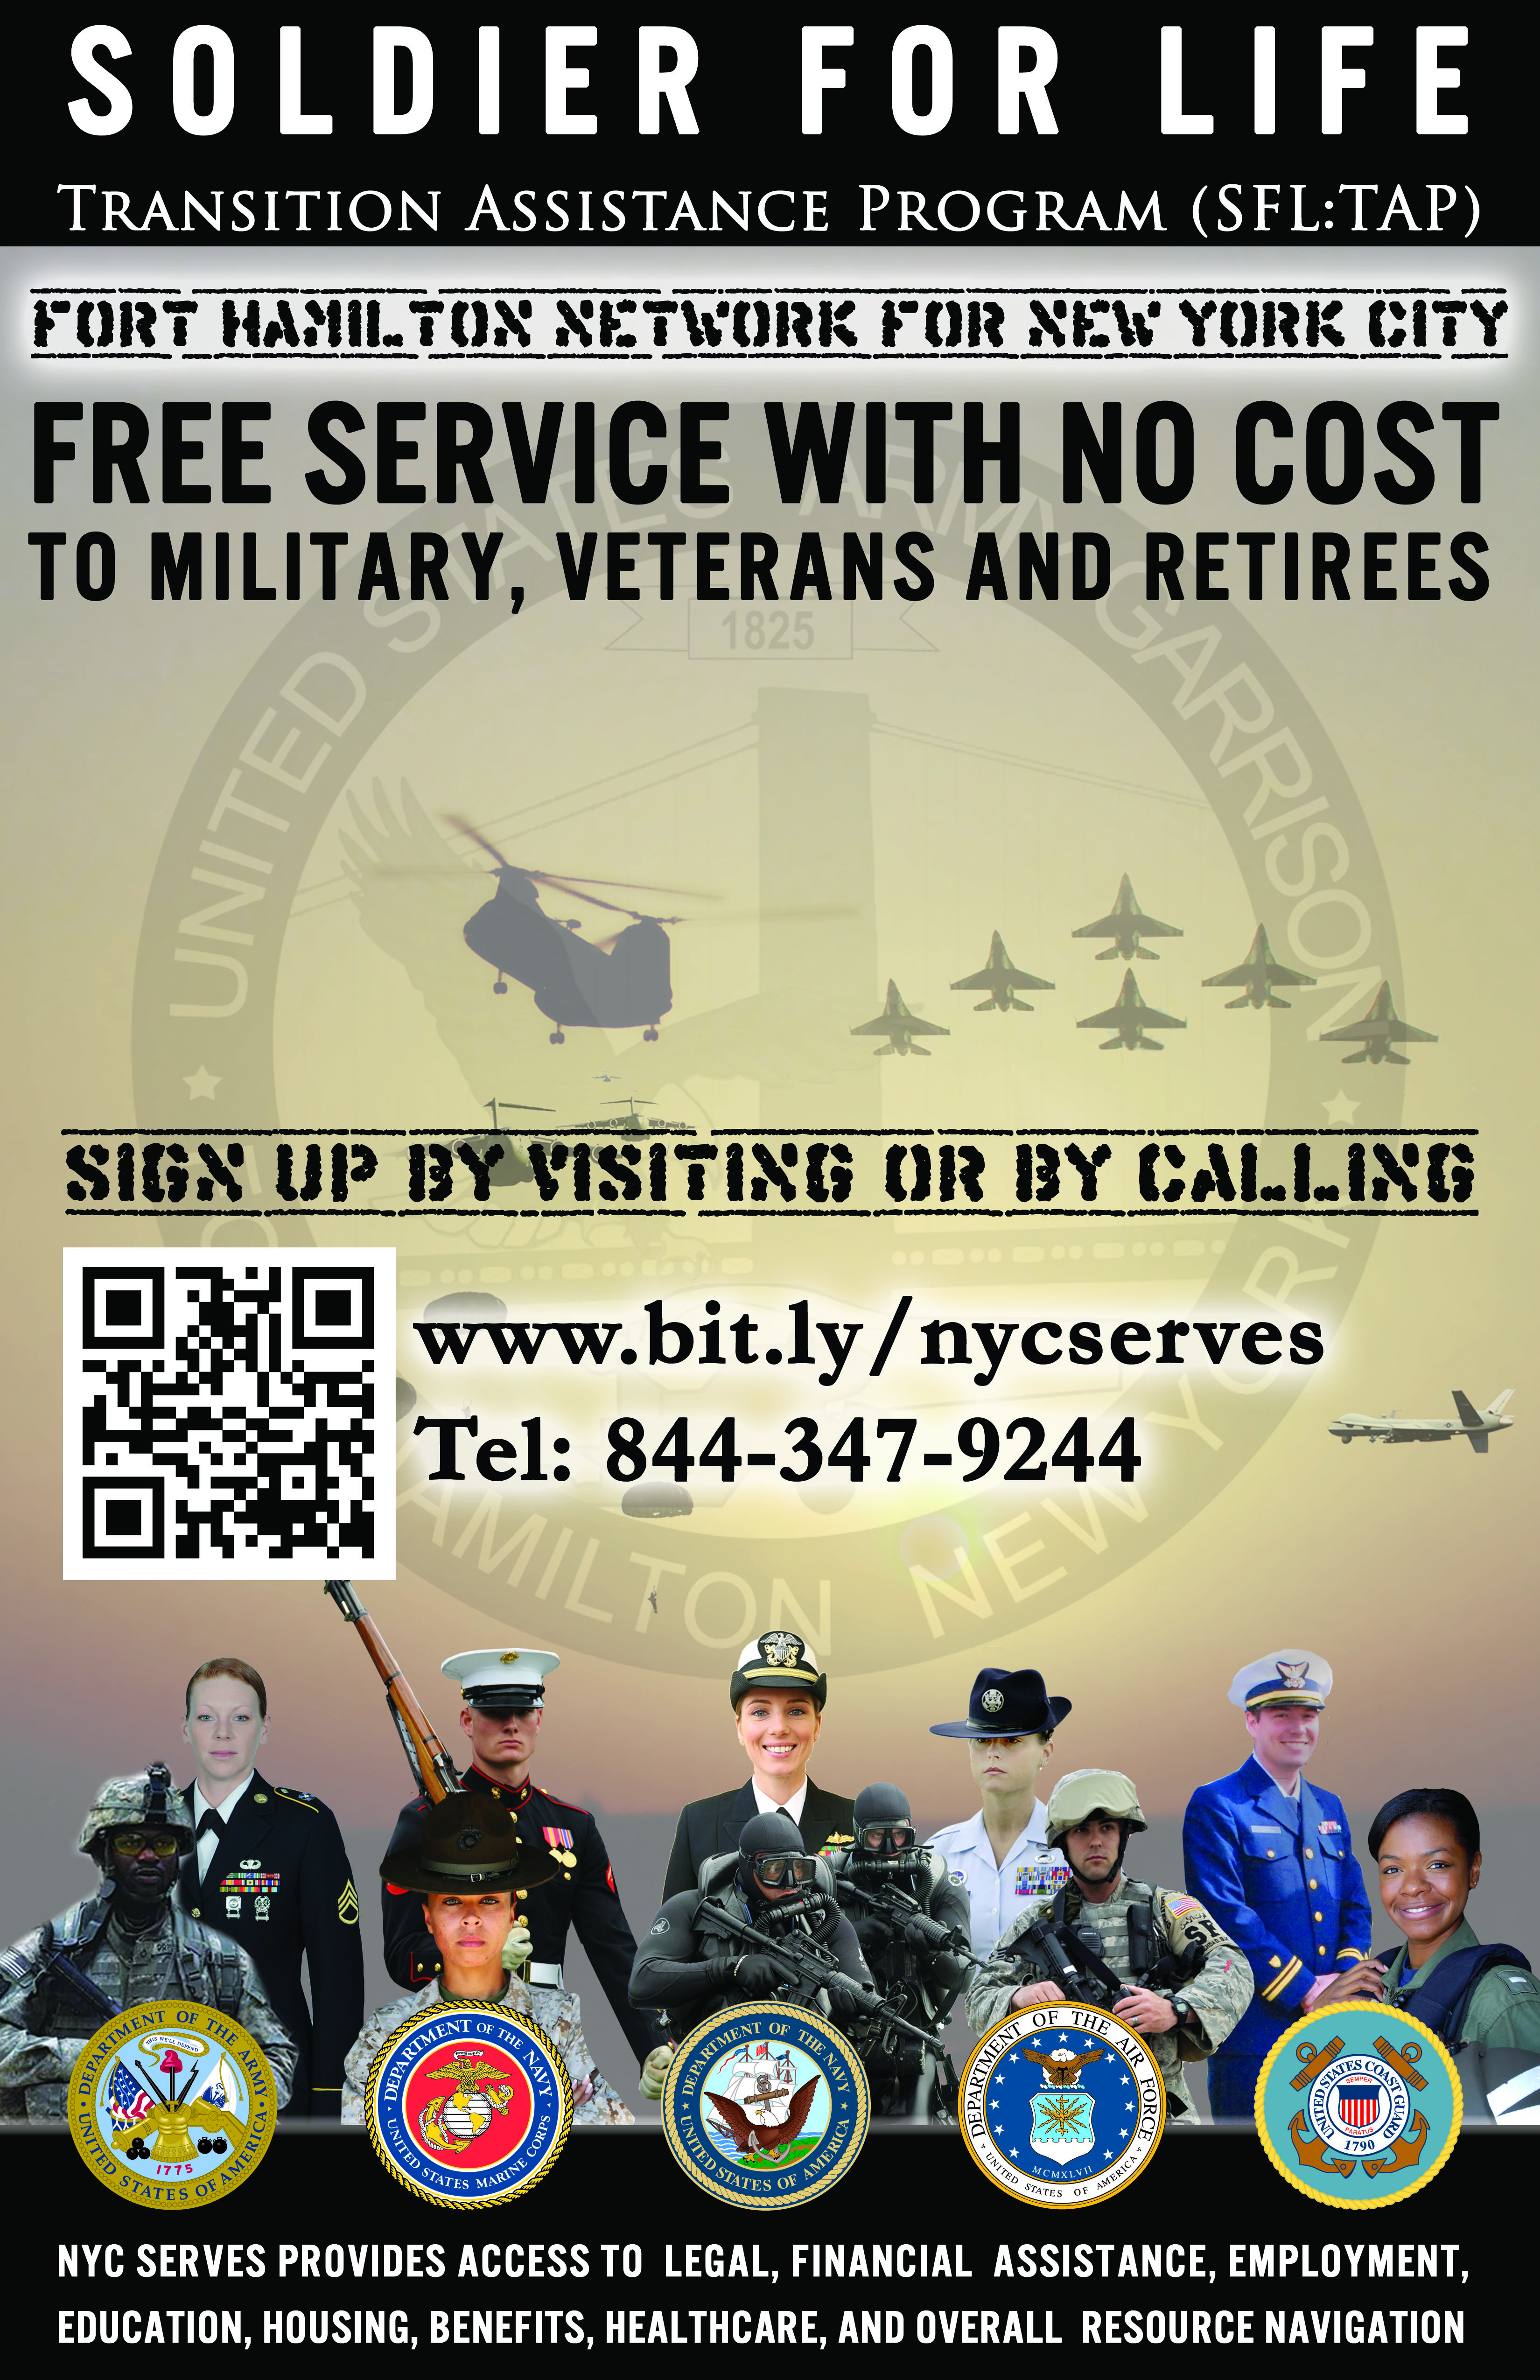 Free Service With No Cost